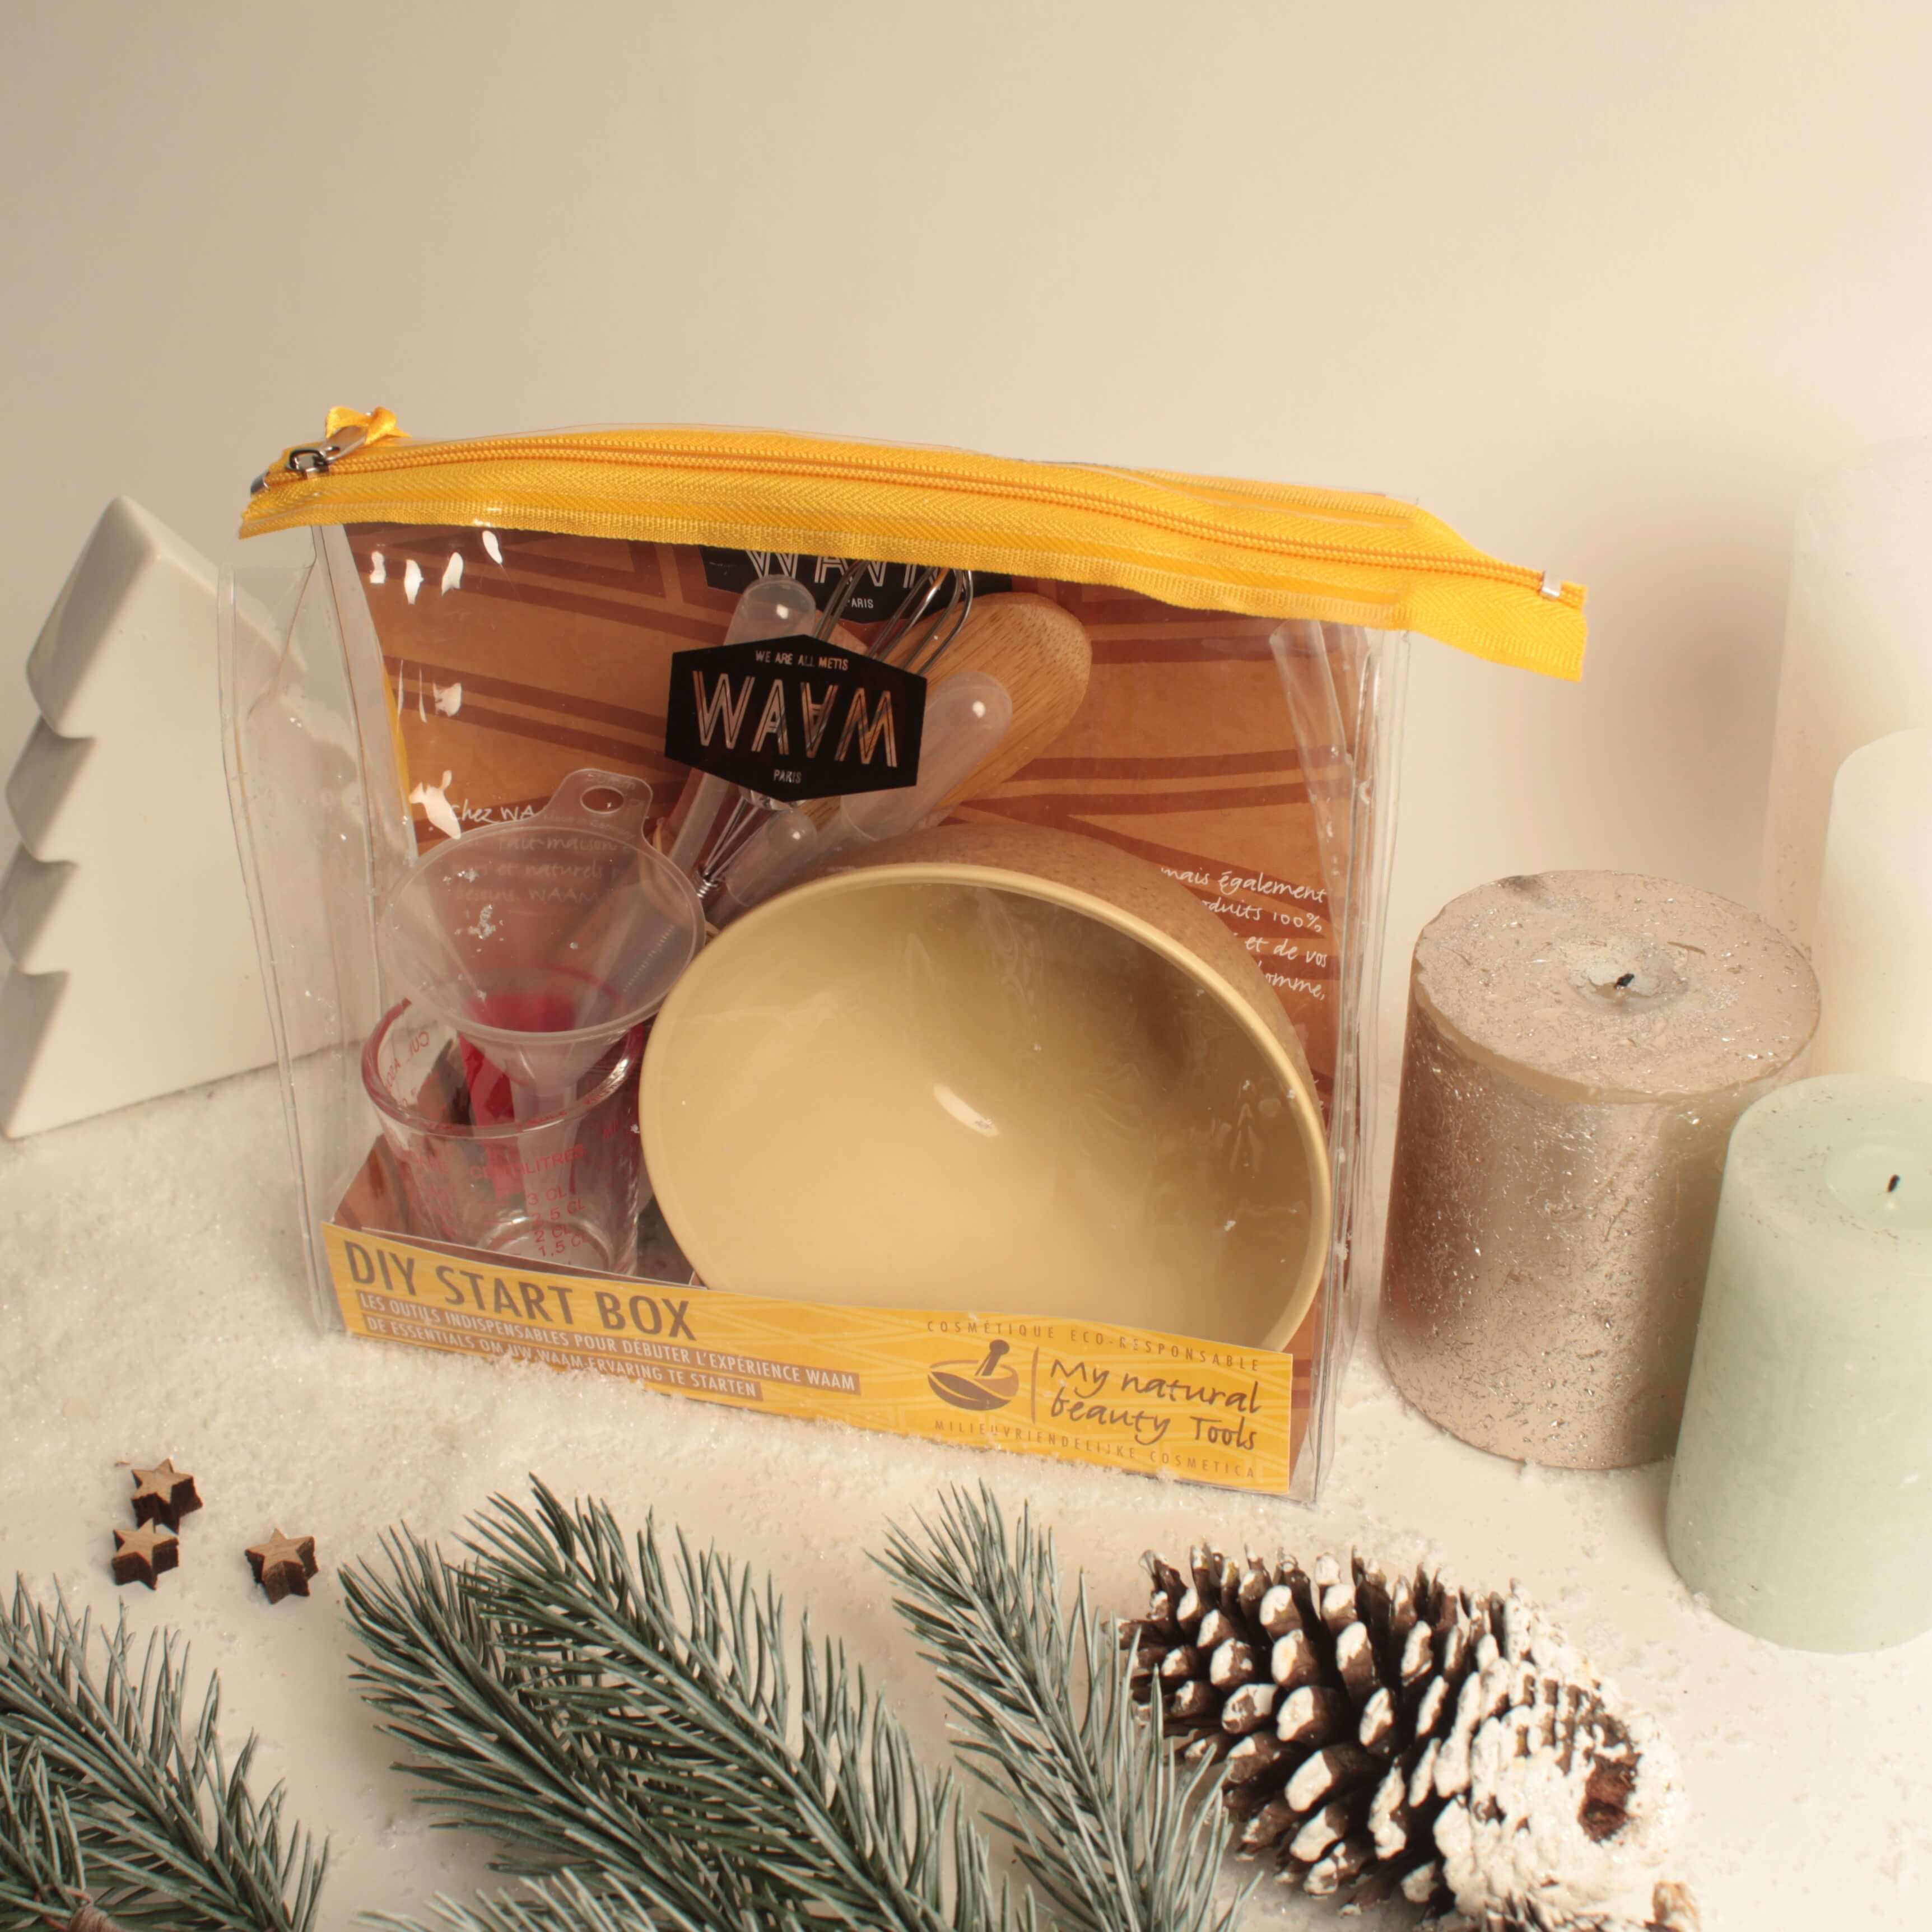 Boutique de noel - DIY Start Box